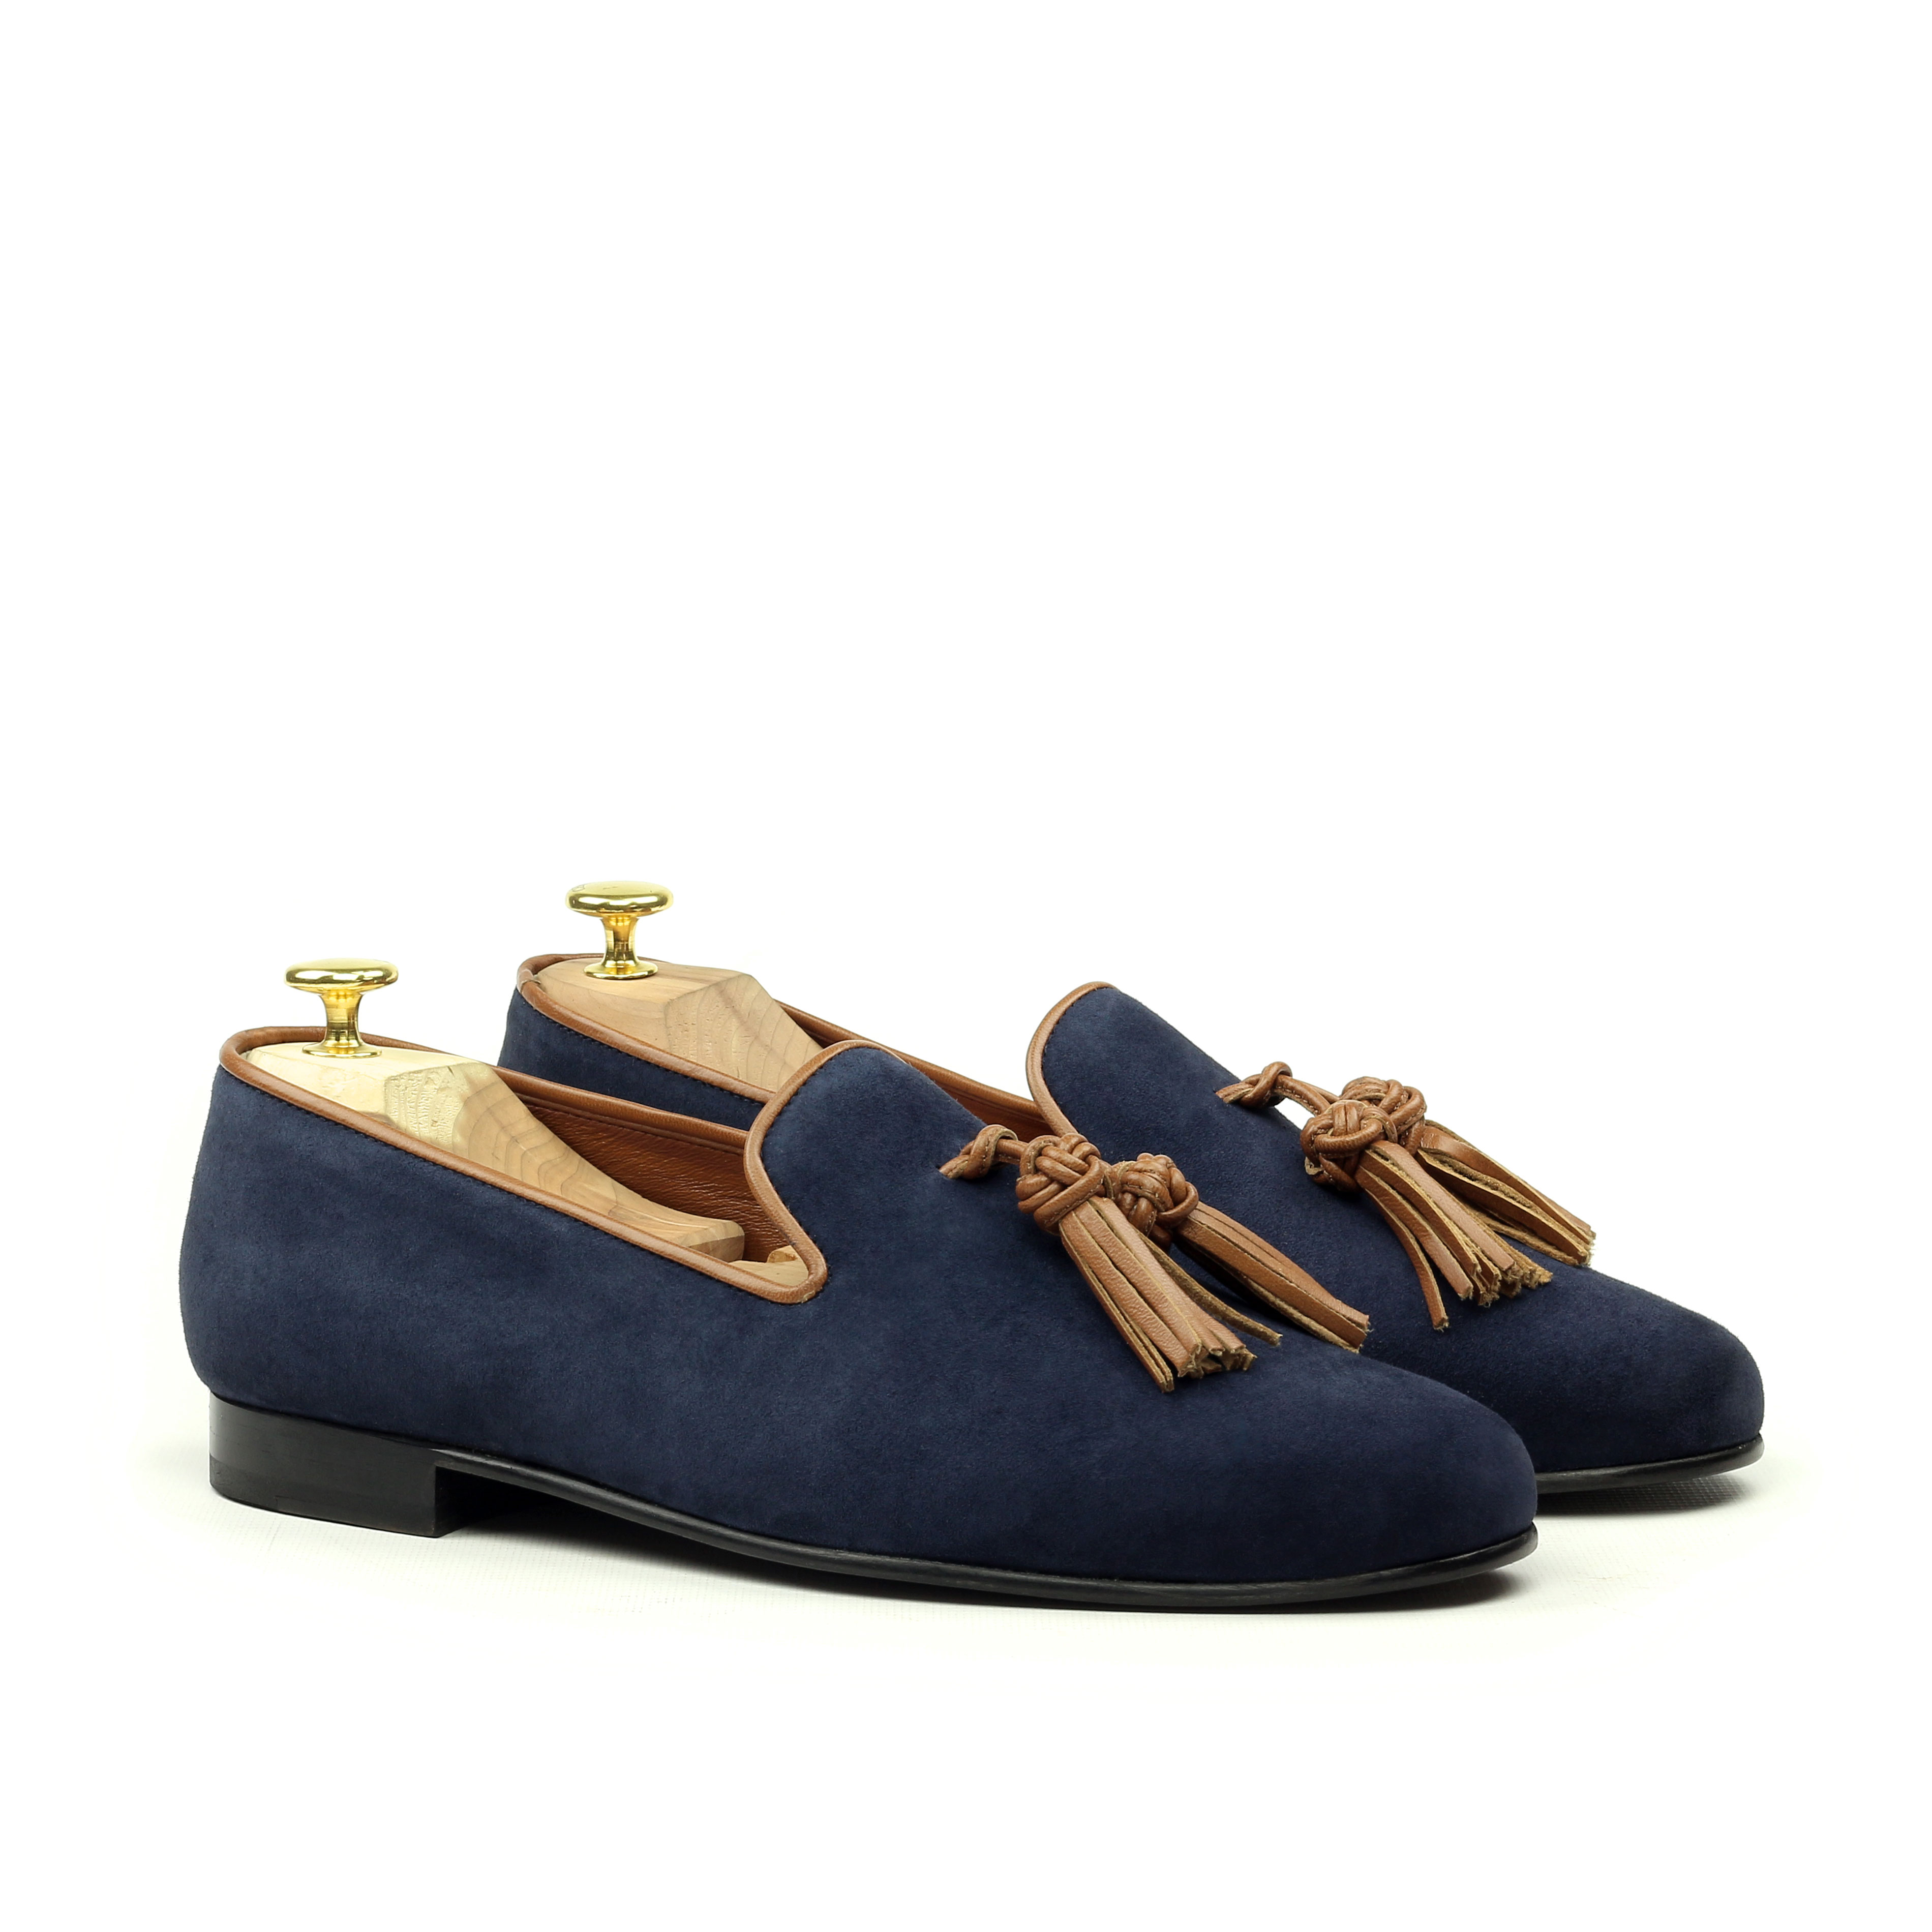 wellington-slipper-navy-suede-special-tassel_5(1)